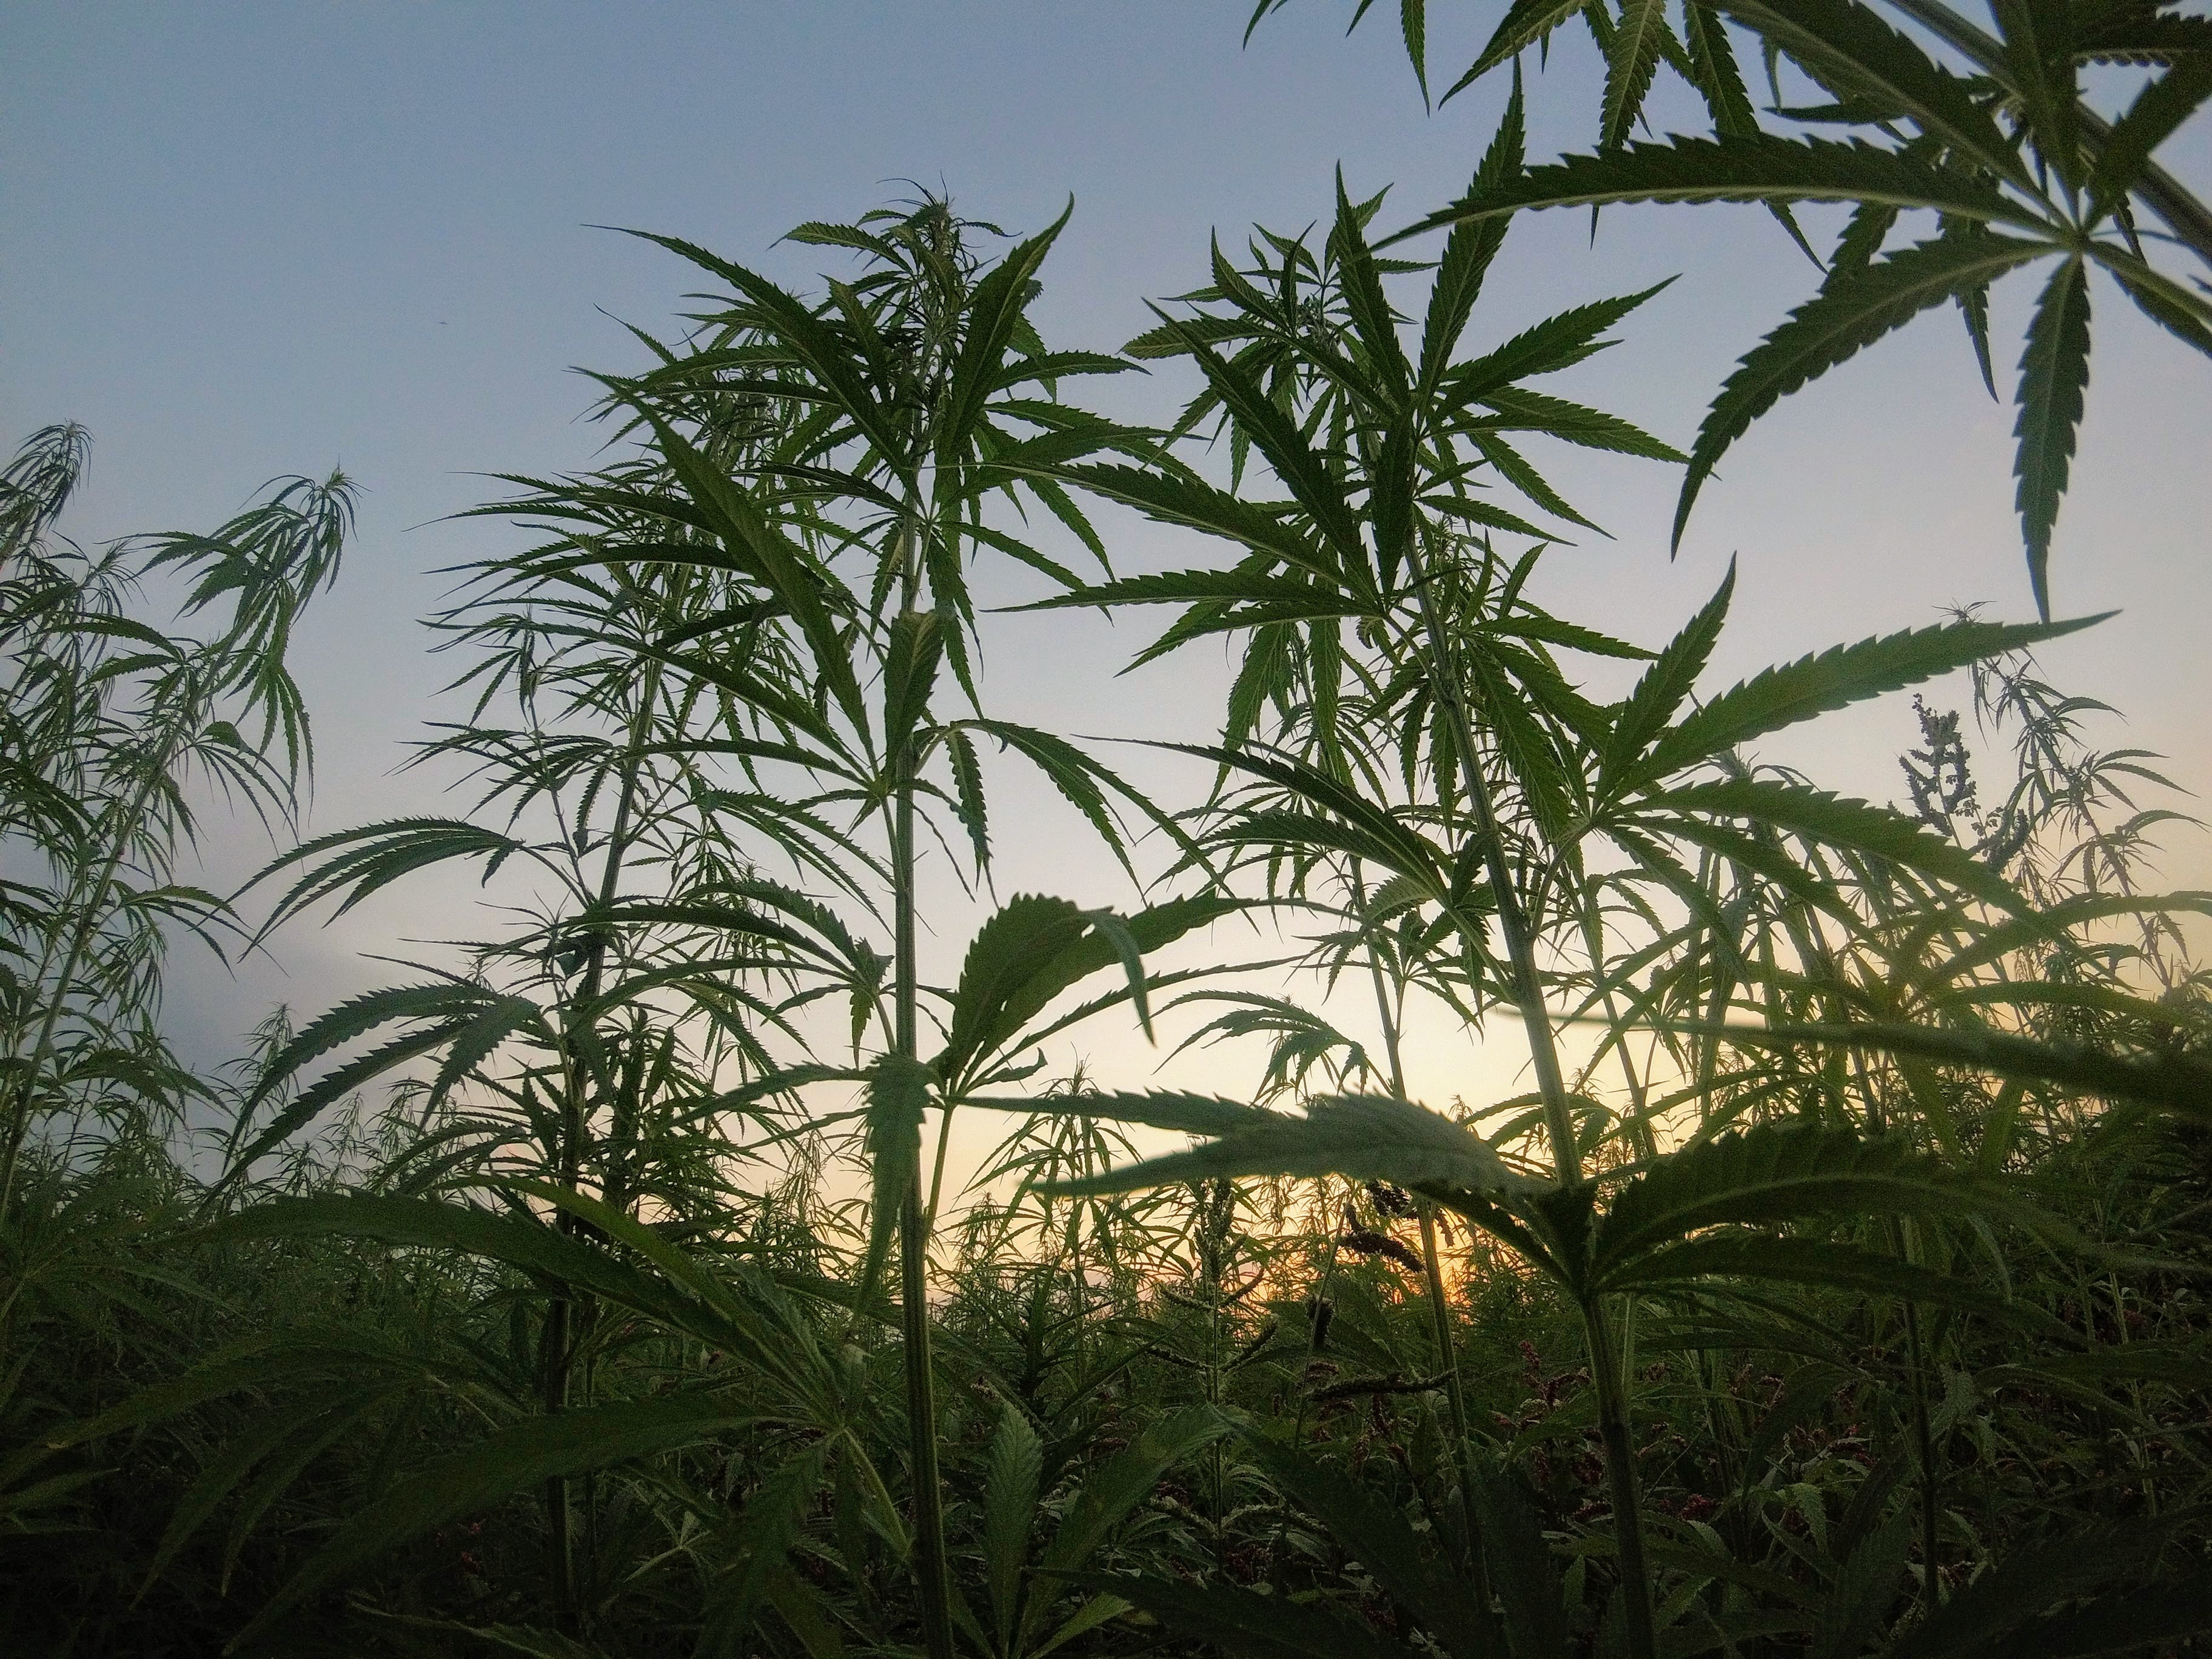 cannabis_colombia_legalcannabis_value_economy_poverty